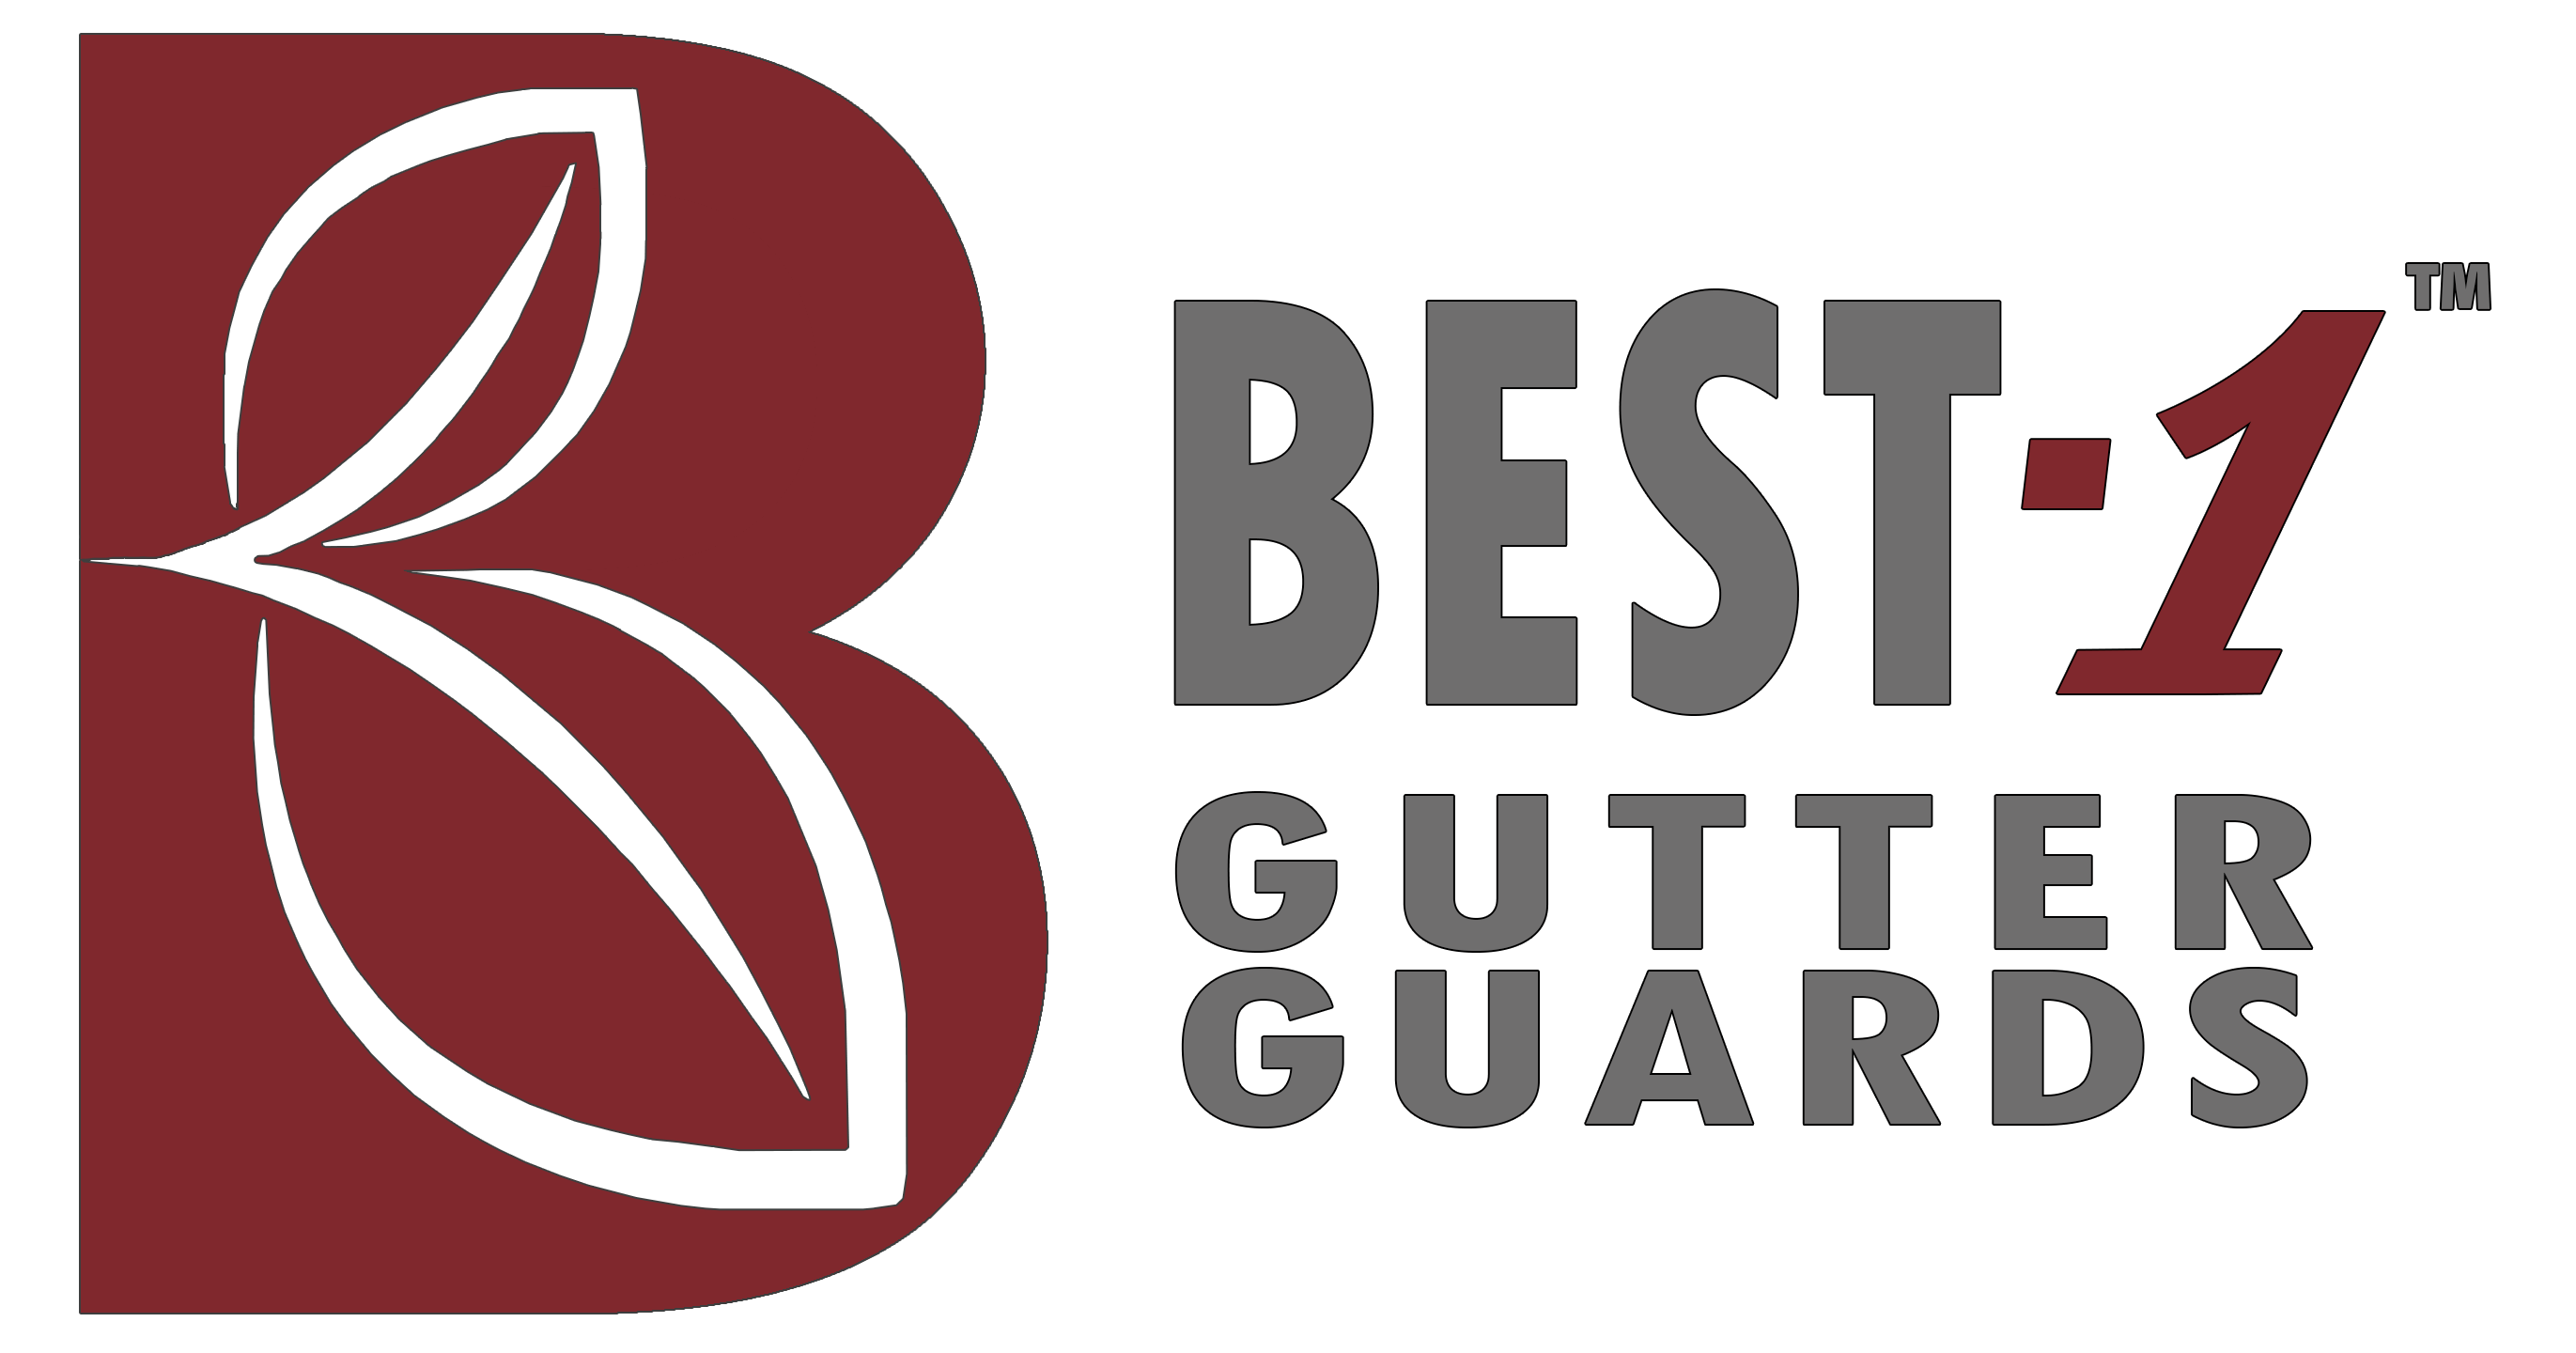 Best-1™ Gutter Guards